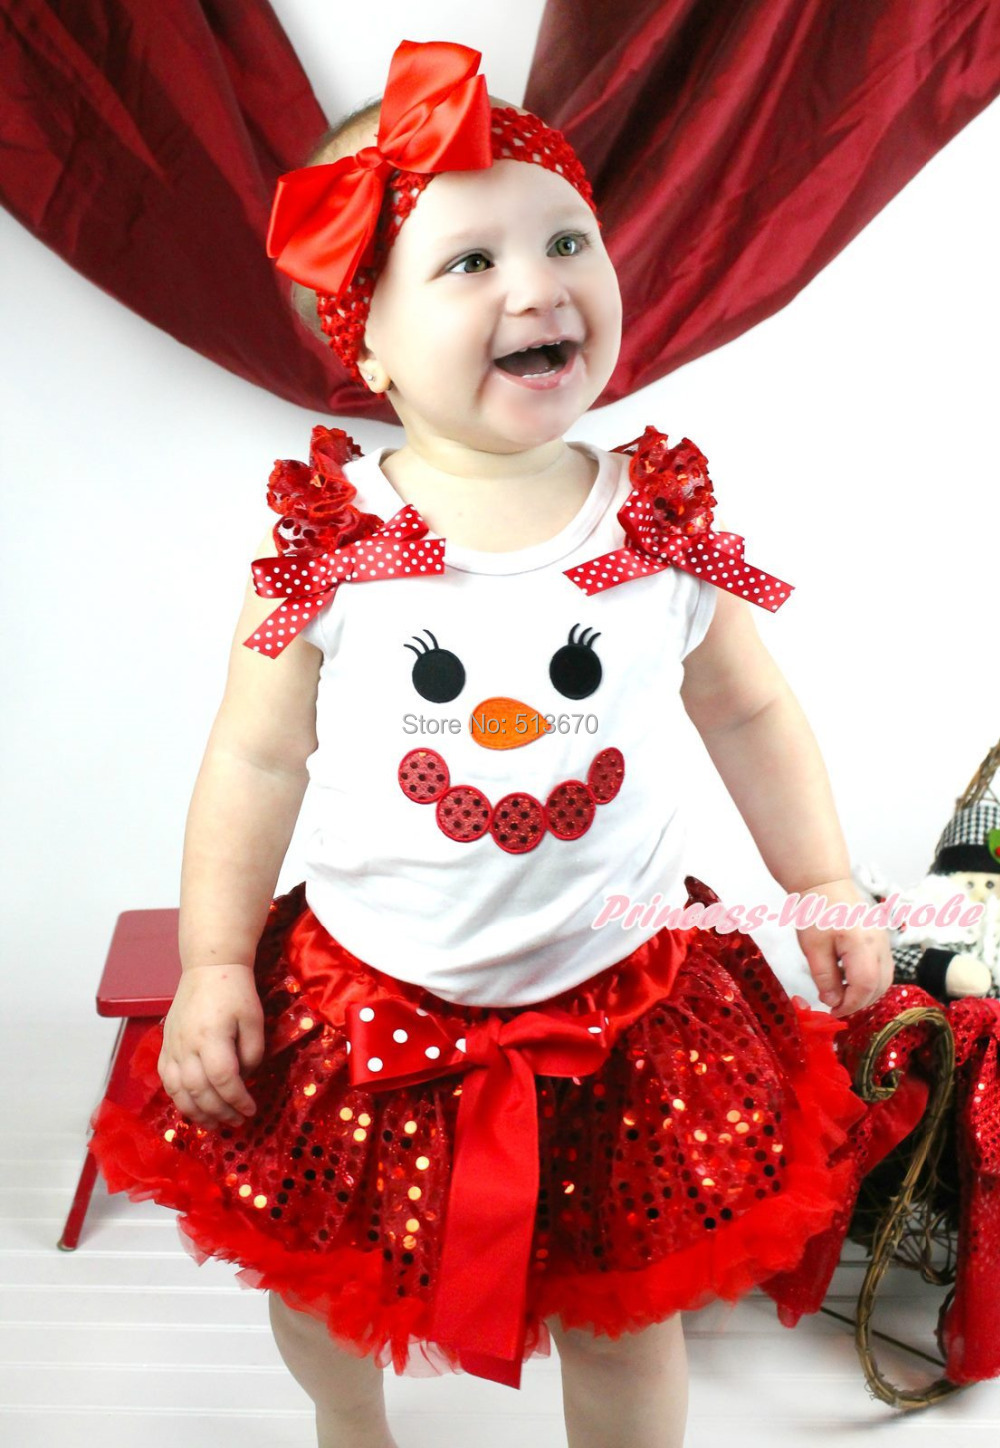 XMAS Minnie Snowman Print White Top Sparkle Sequins Red Pettiskirt Girl Outfit 1-8Y MAPSA0331 xmas minnie snowman white shirt top santa claus skirt girl clothing outfit 1 8y